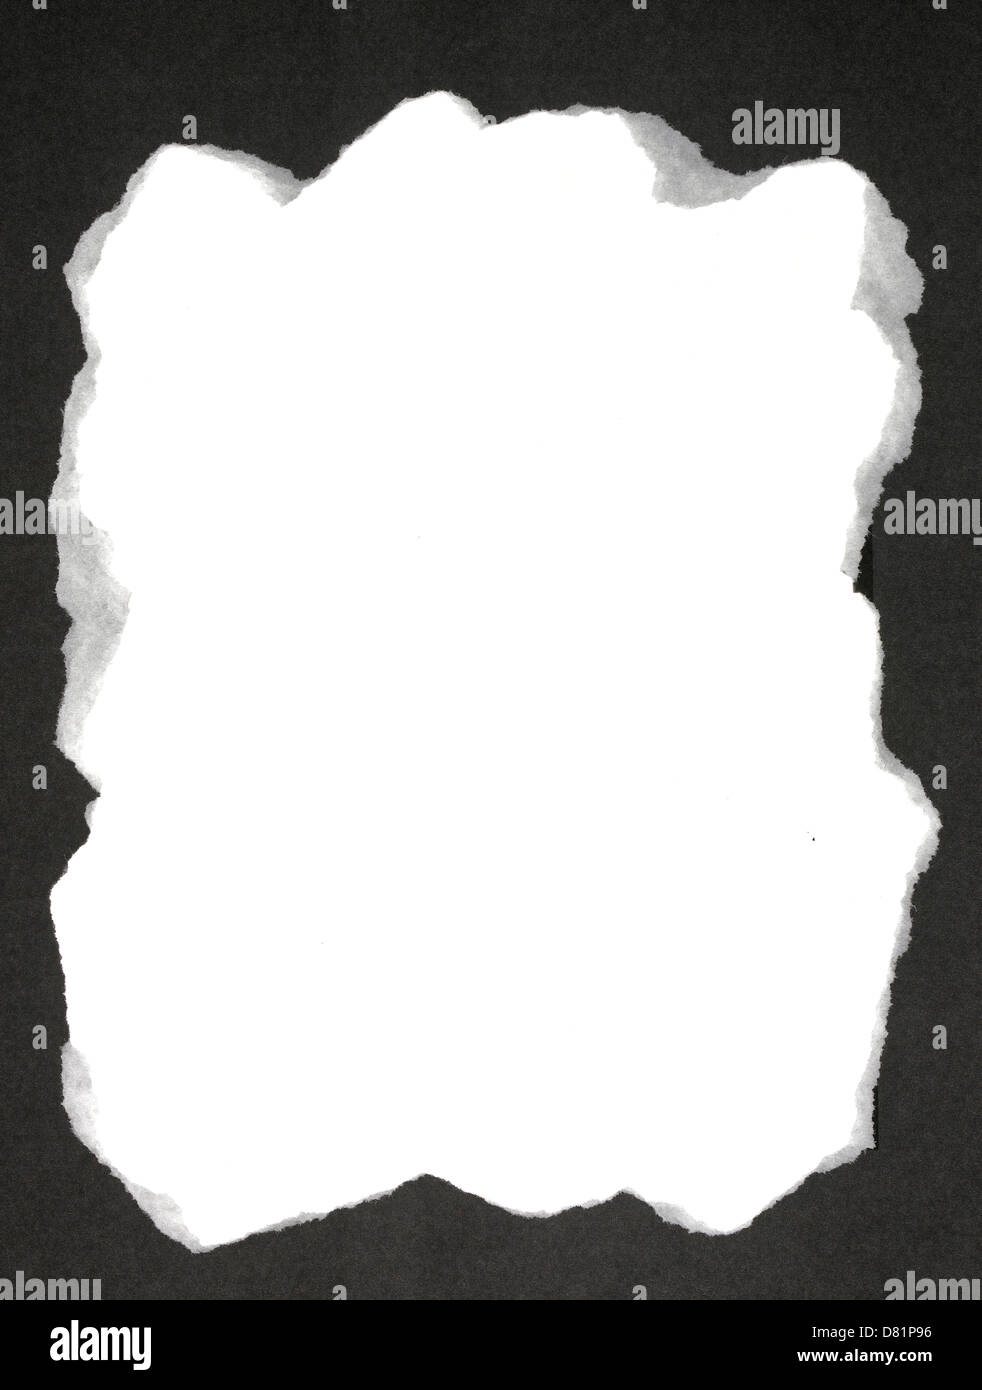 Ripped Paper Black Background Stock Photos & Ripped Paper Black ...